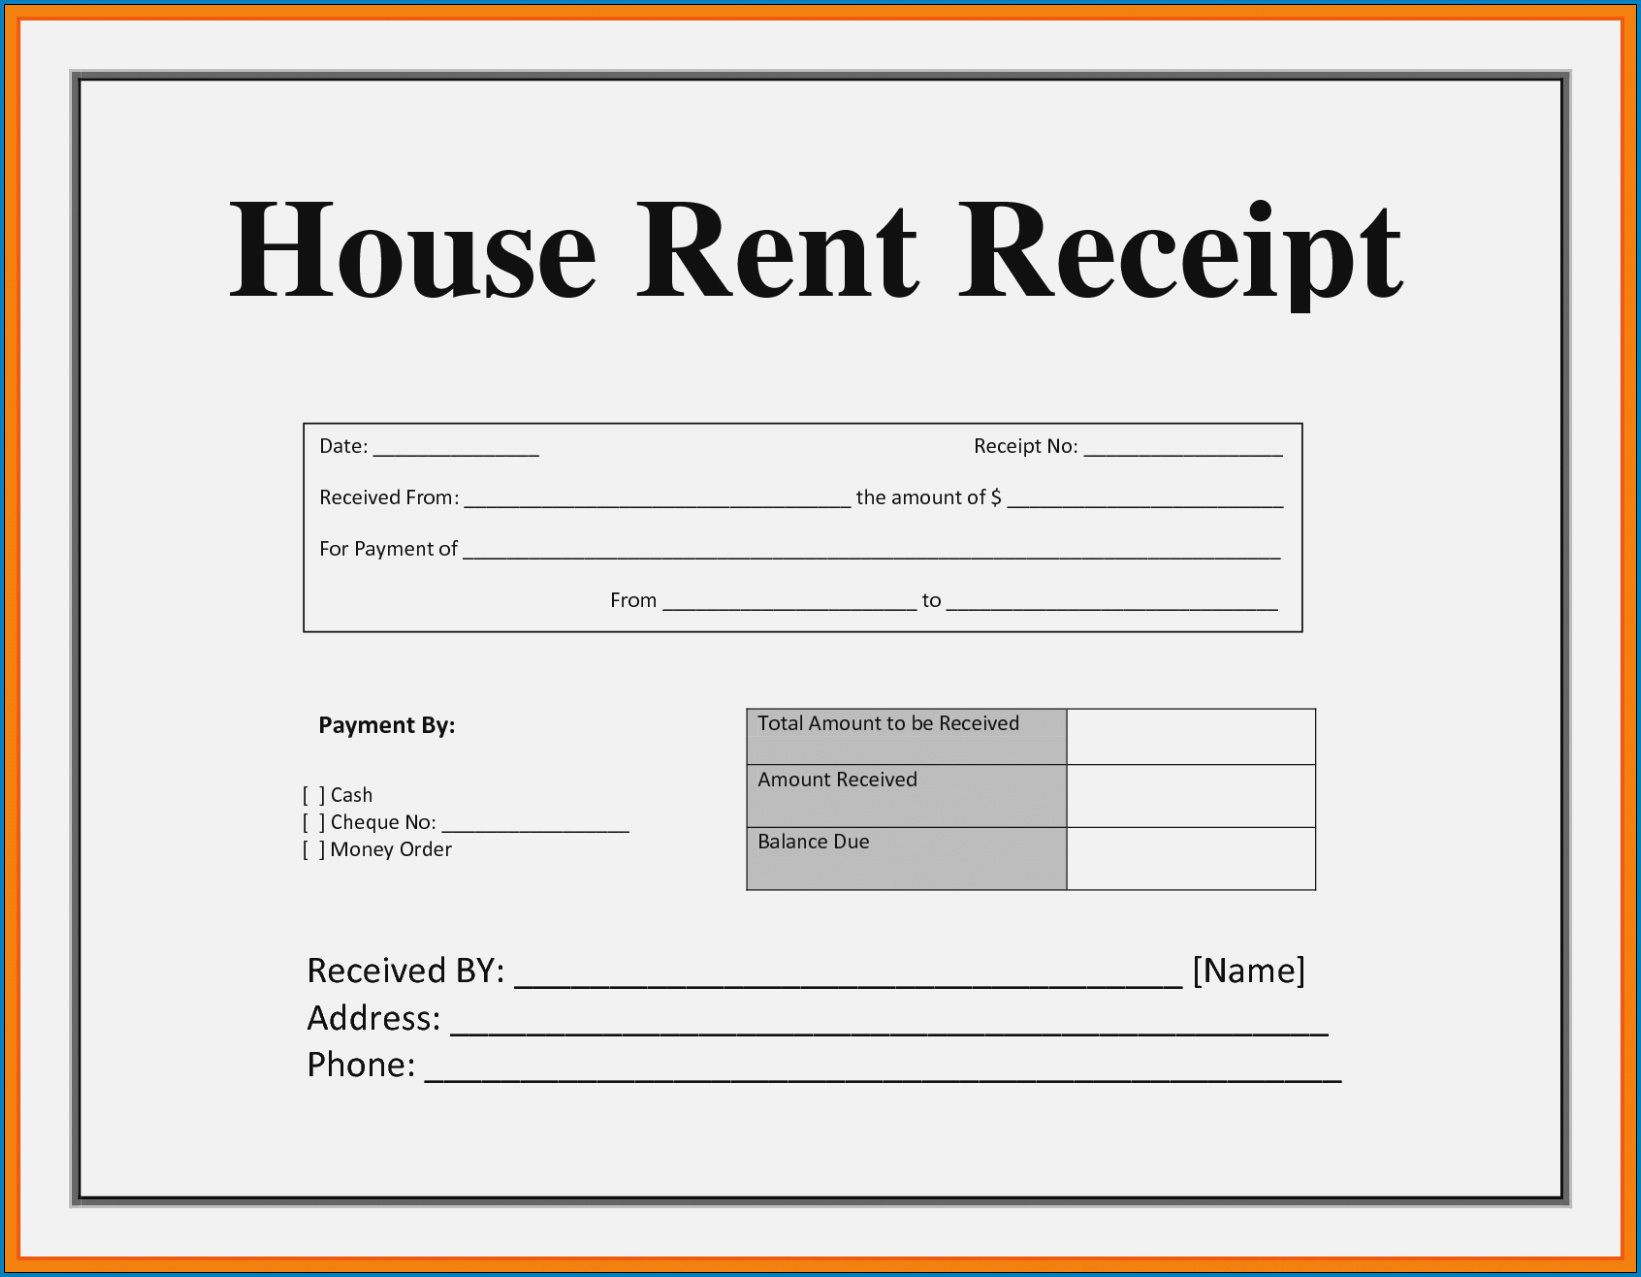 003 Striking House Rent Receipt Sample Doc Inspiration  Template Word Document Free Download Format For Income TaxFull